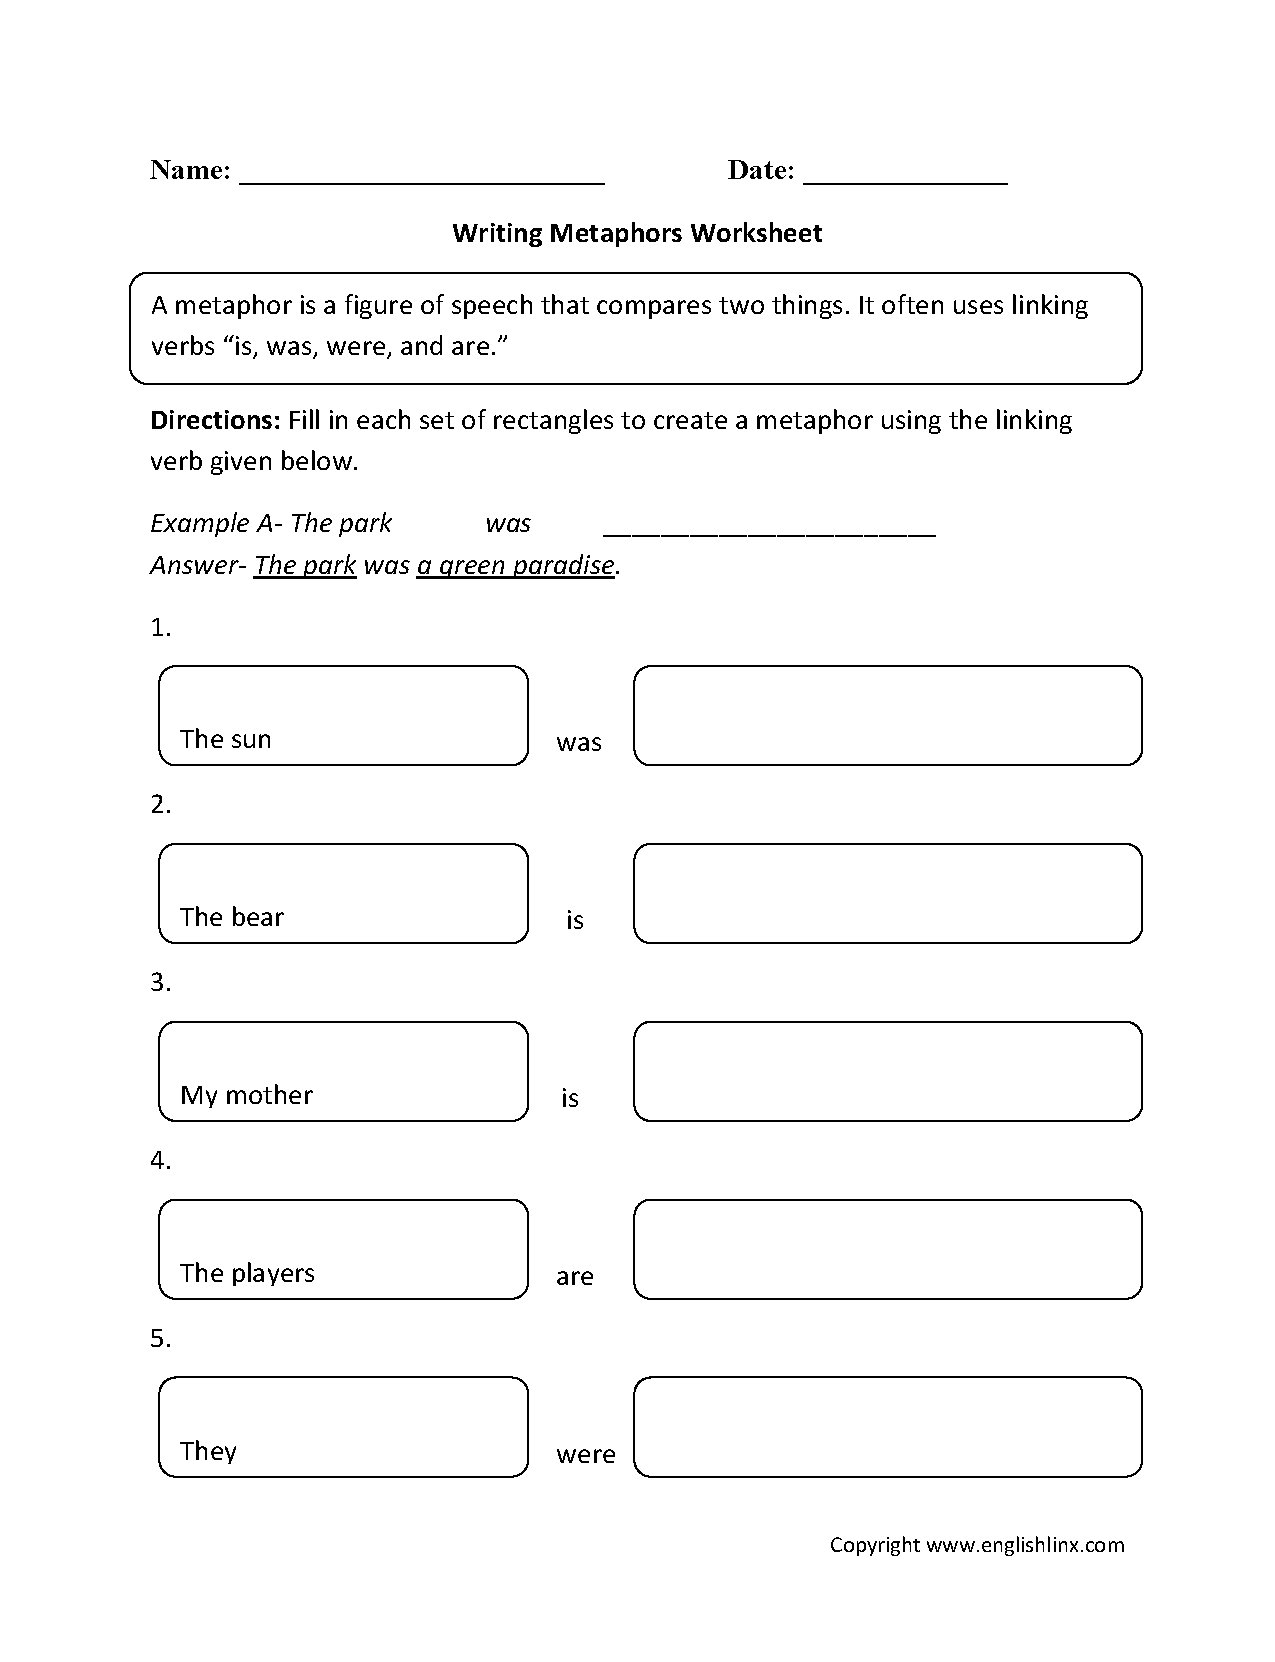 worksheet Metaphors And Similes Worksheets simile and metaphor worksheet 5th grade pdf worksheets davezan